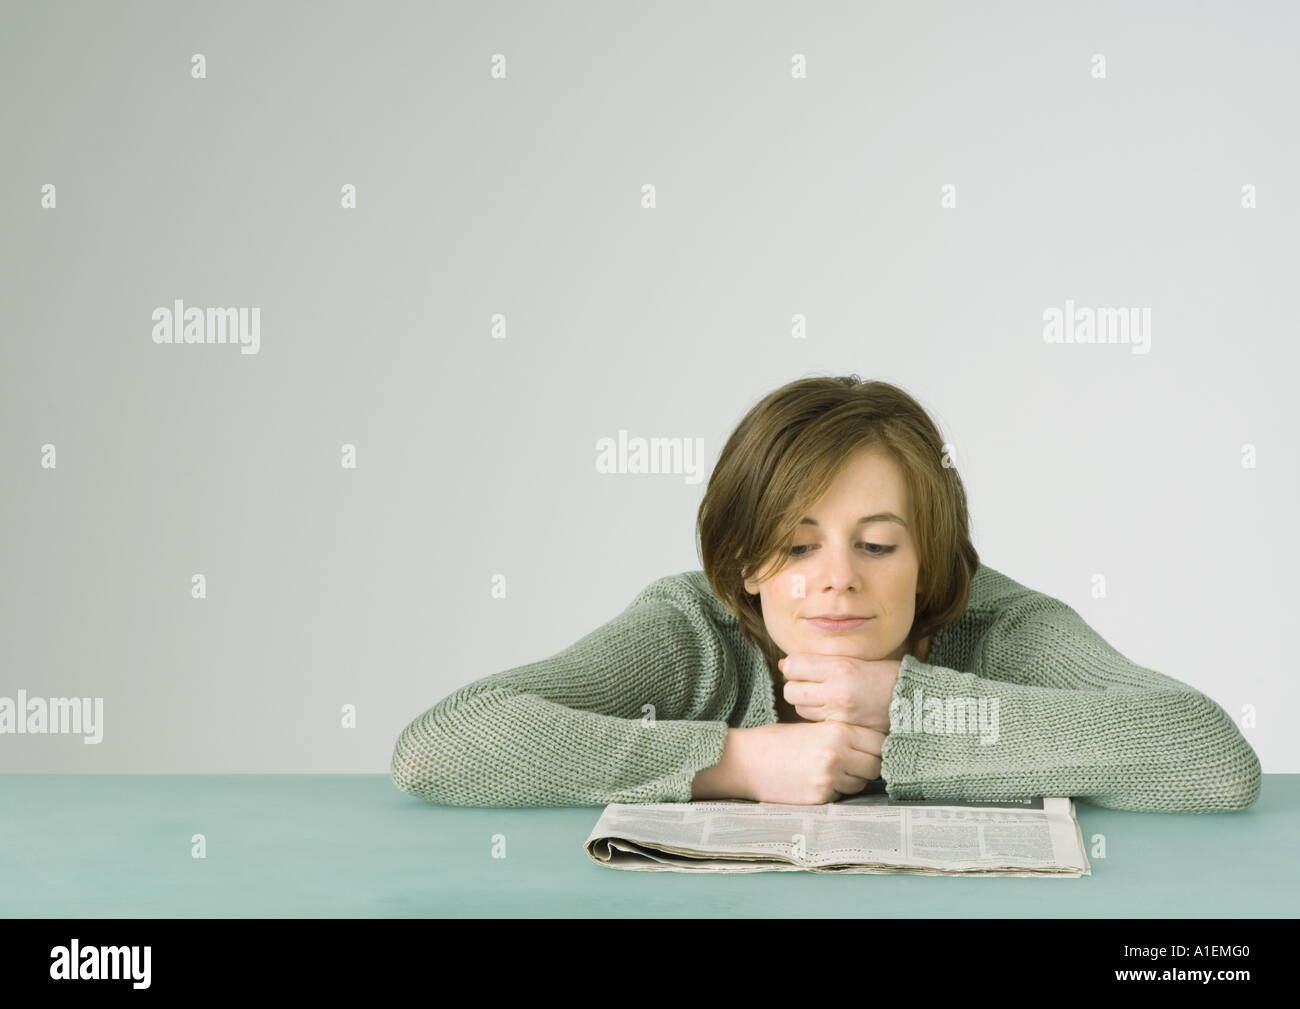 Young woman leaning on table, reading newspaper Photo Stock